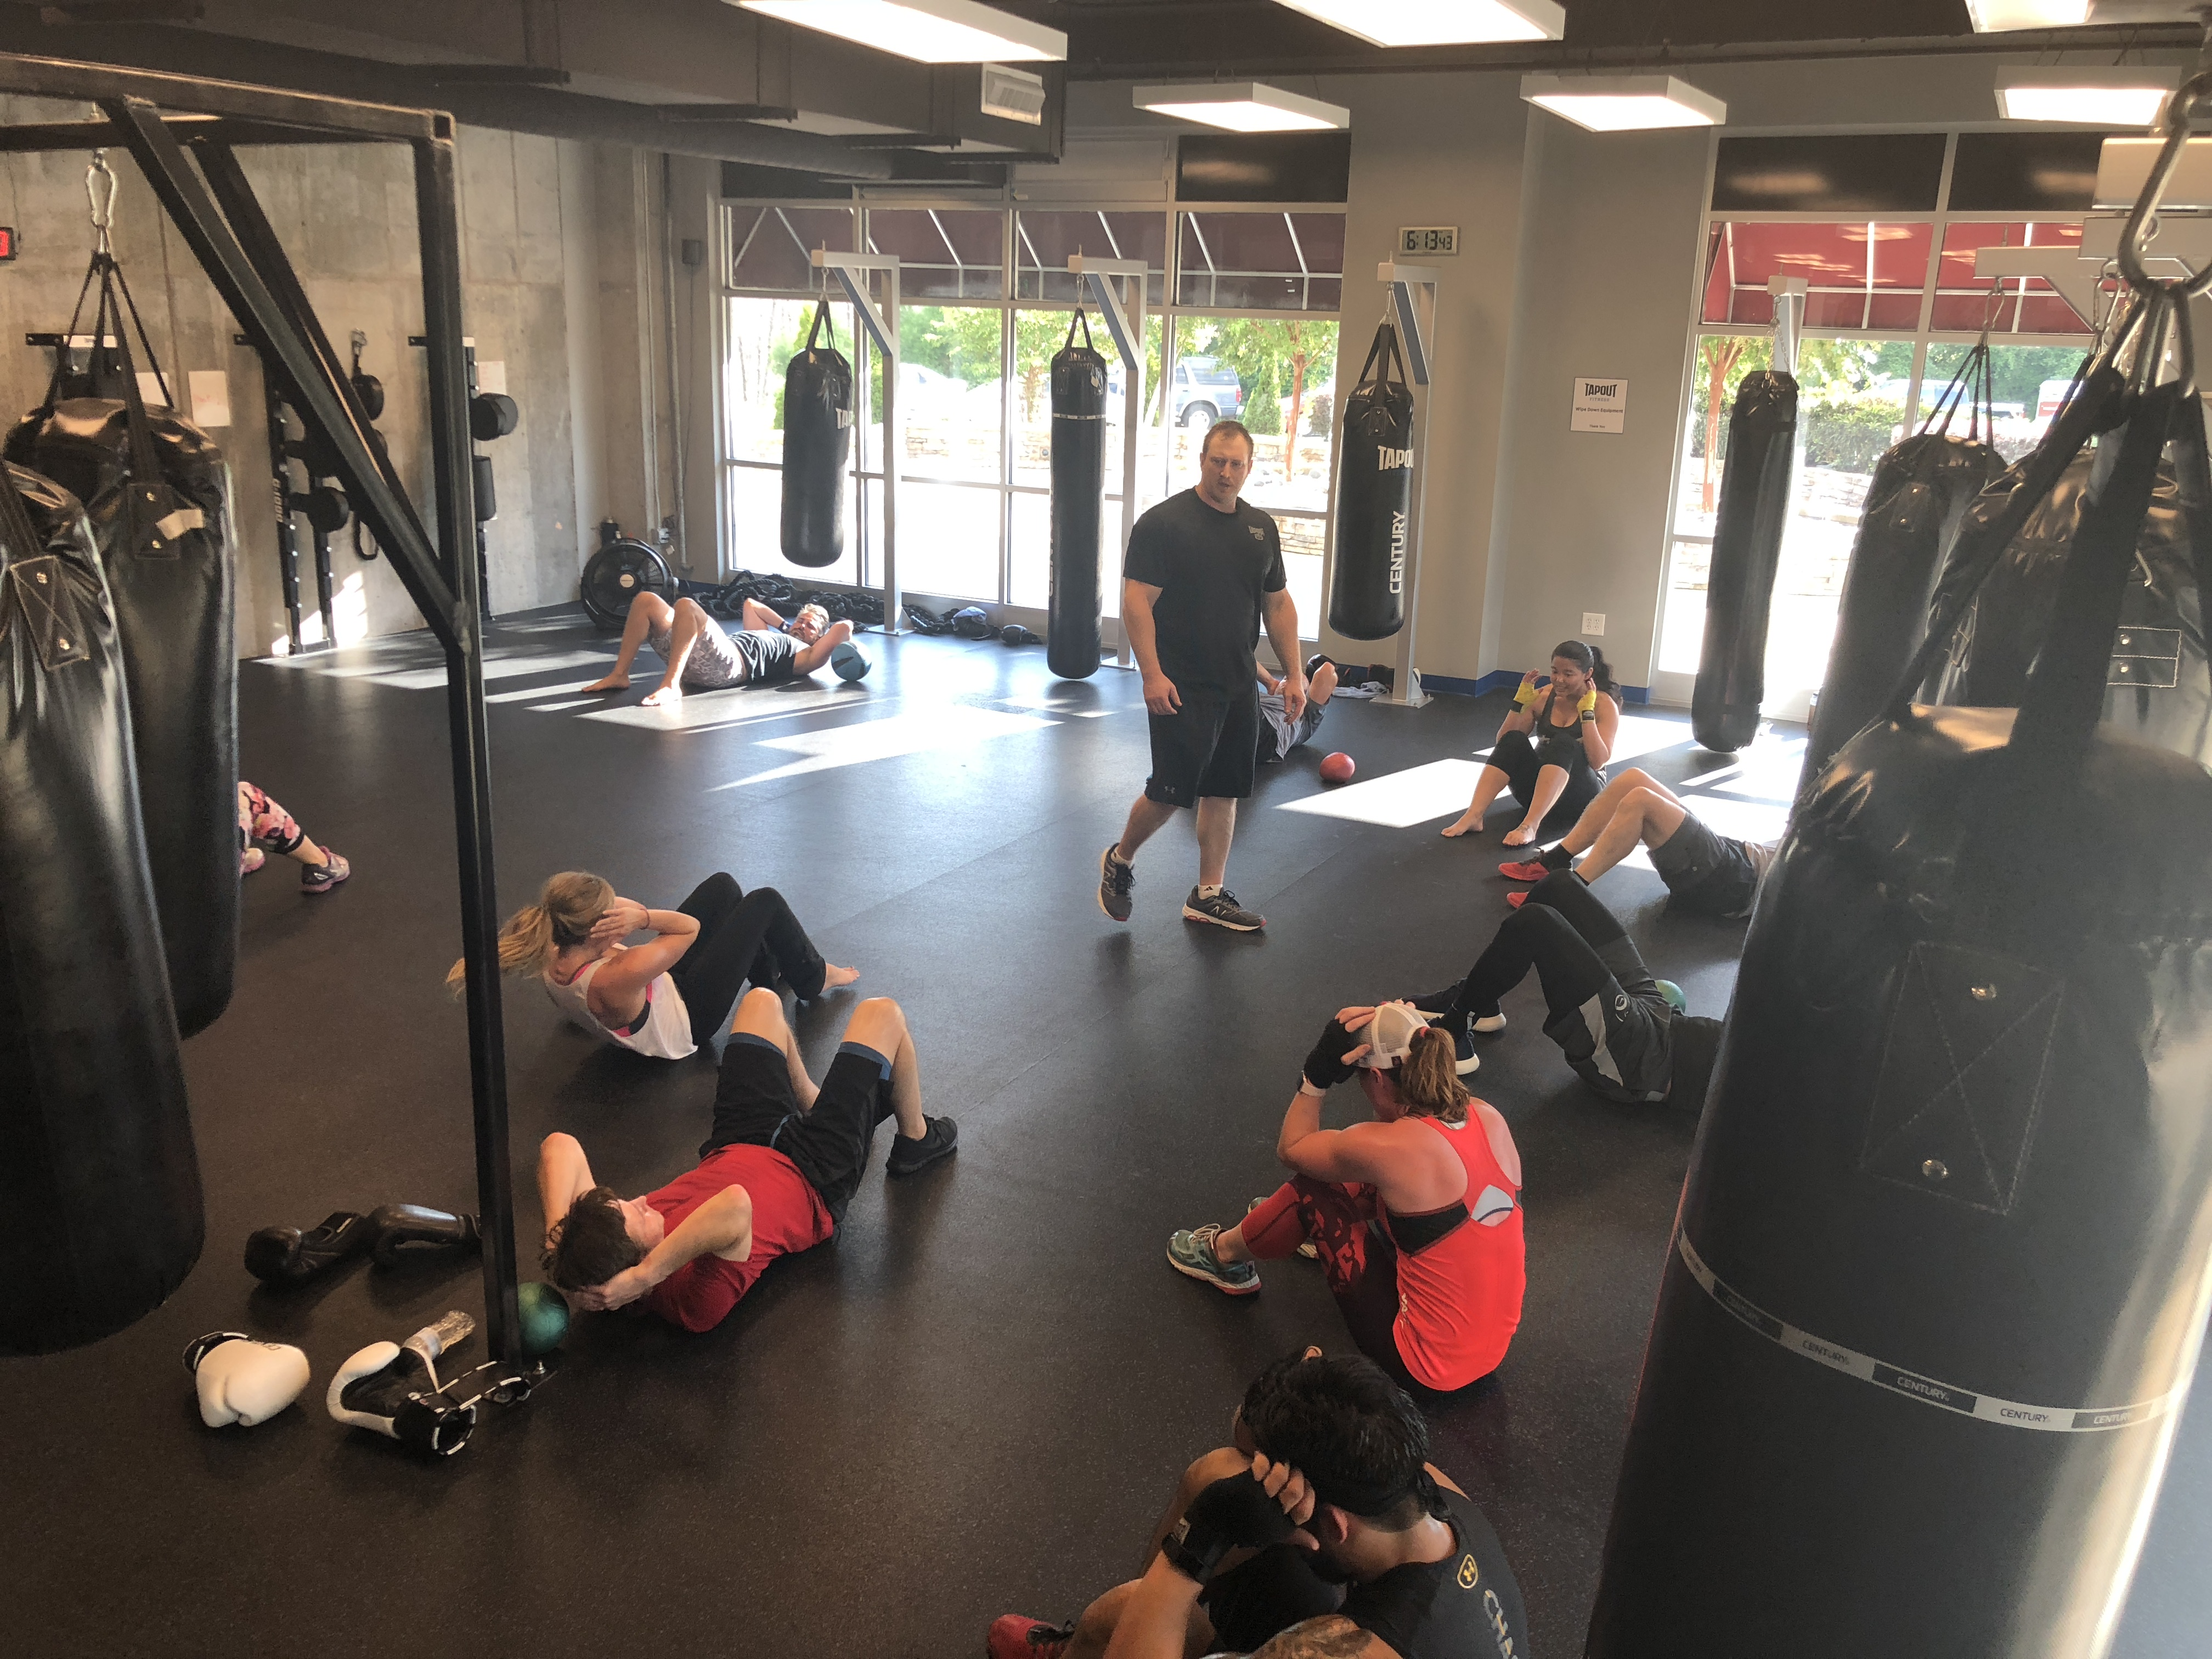 Fitness Center & Fitness Club with Martial Arts | Tapout Fitness 27604